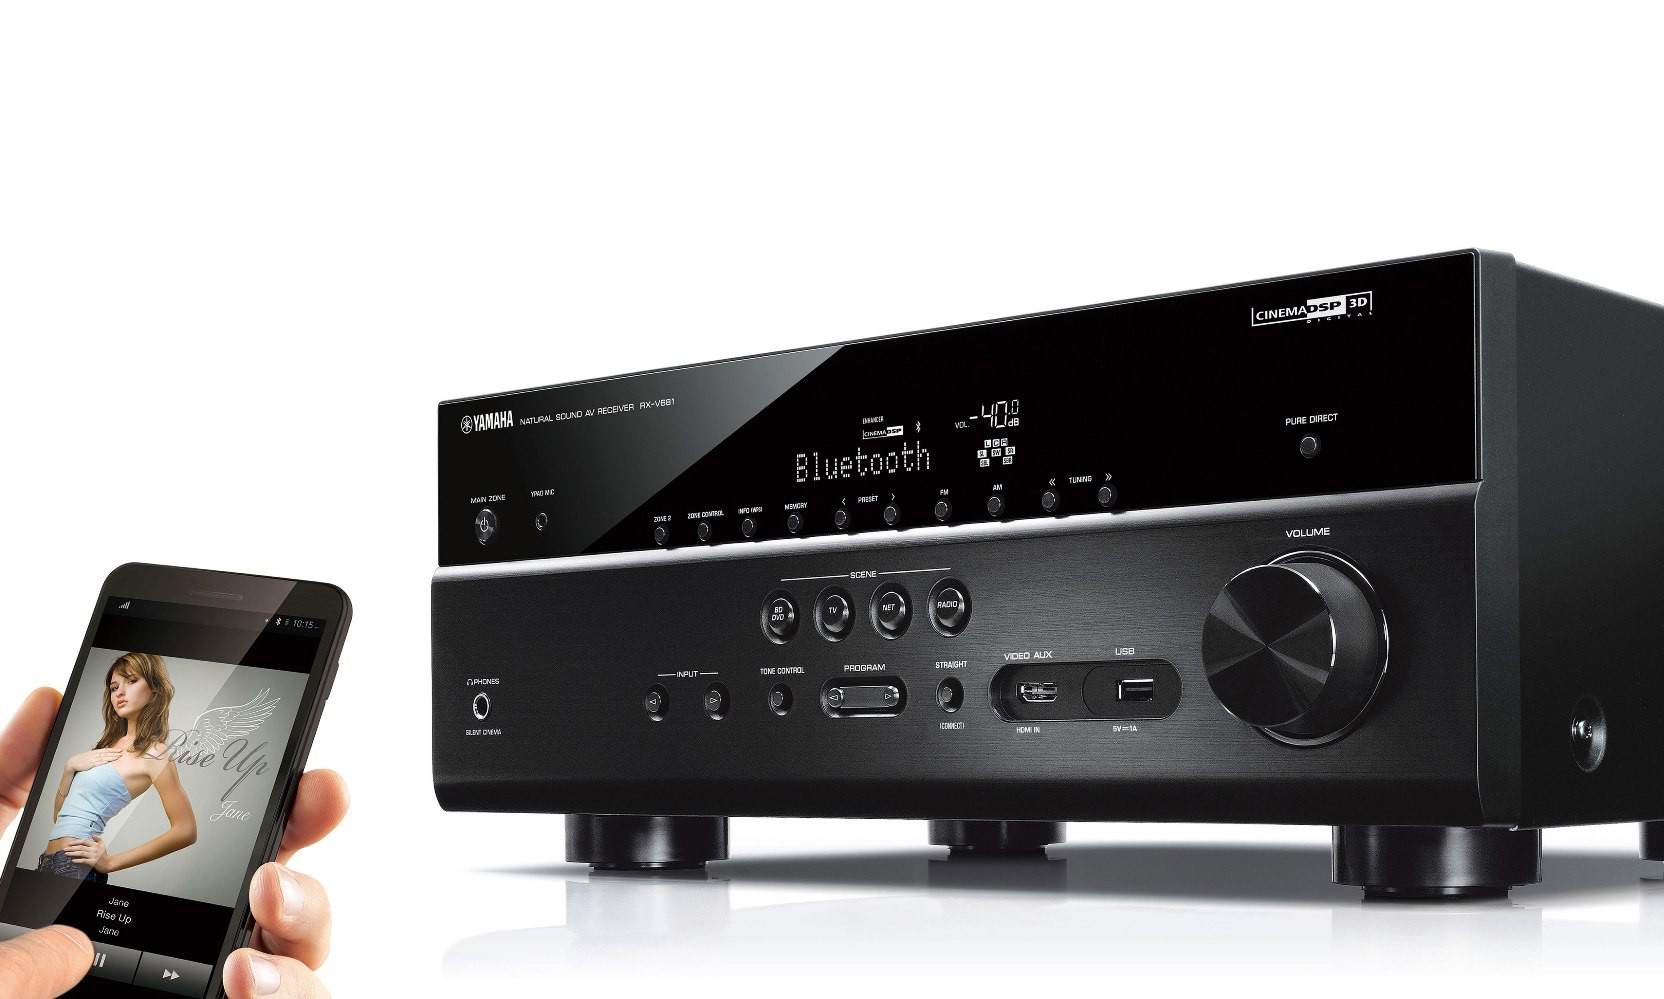 yamaha s latest line of home cinema receivers rx vx81. Black Bedroom Furniture Sets. Home Design Ideas